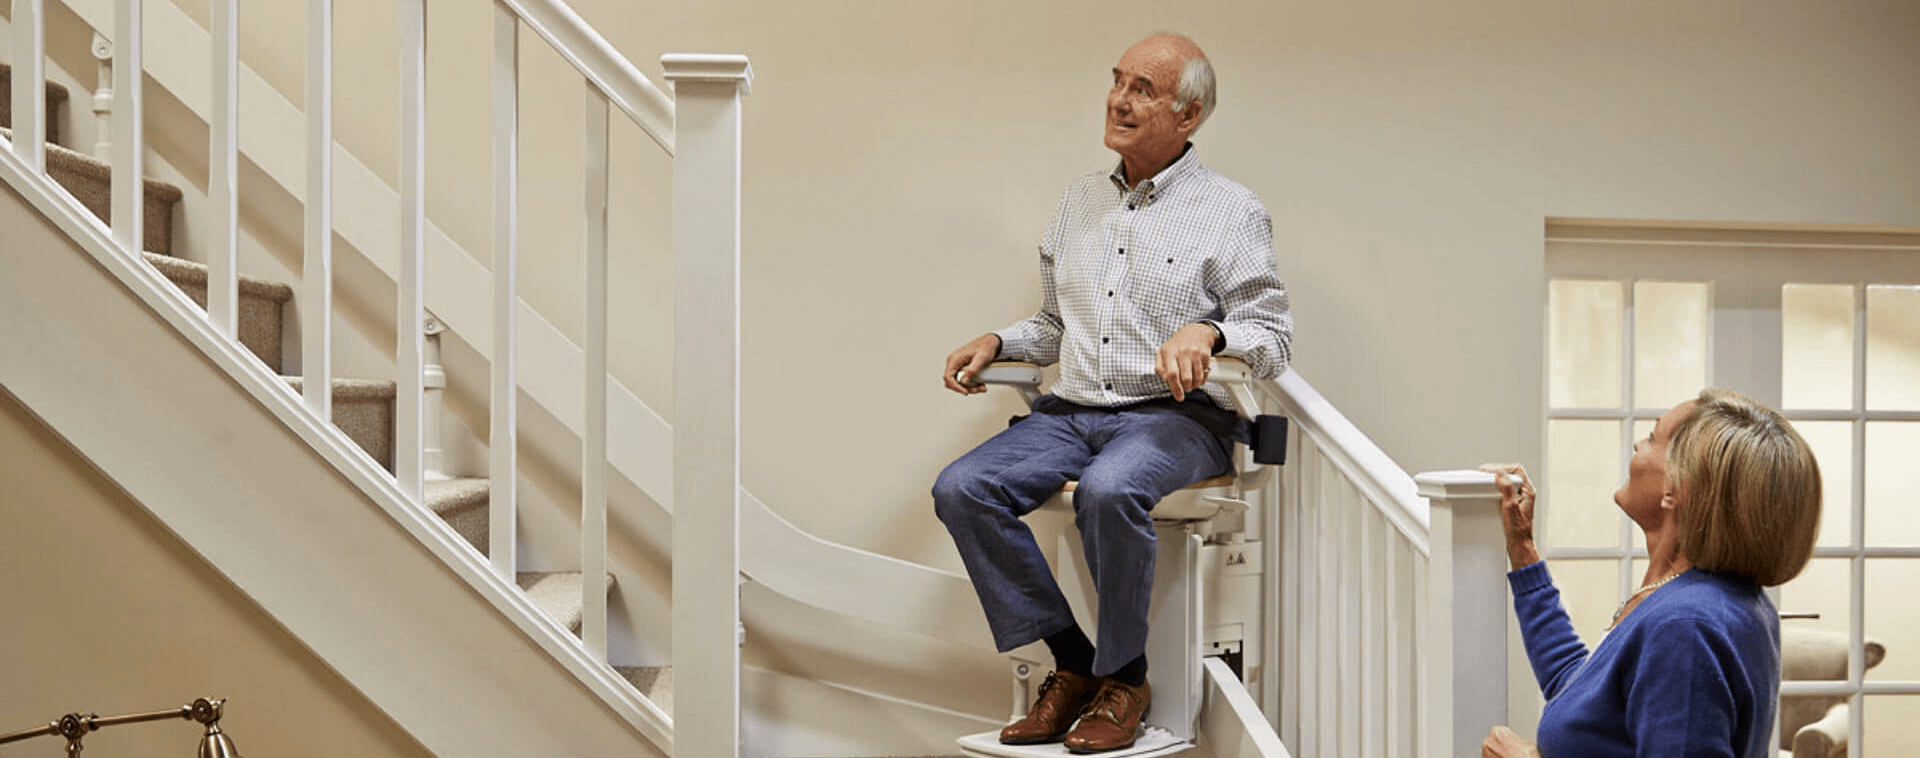 Genial Every Day People Regain Their Independence With An Acorn Stairlift.